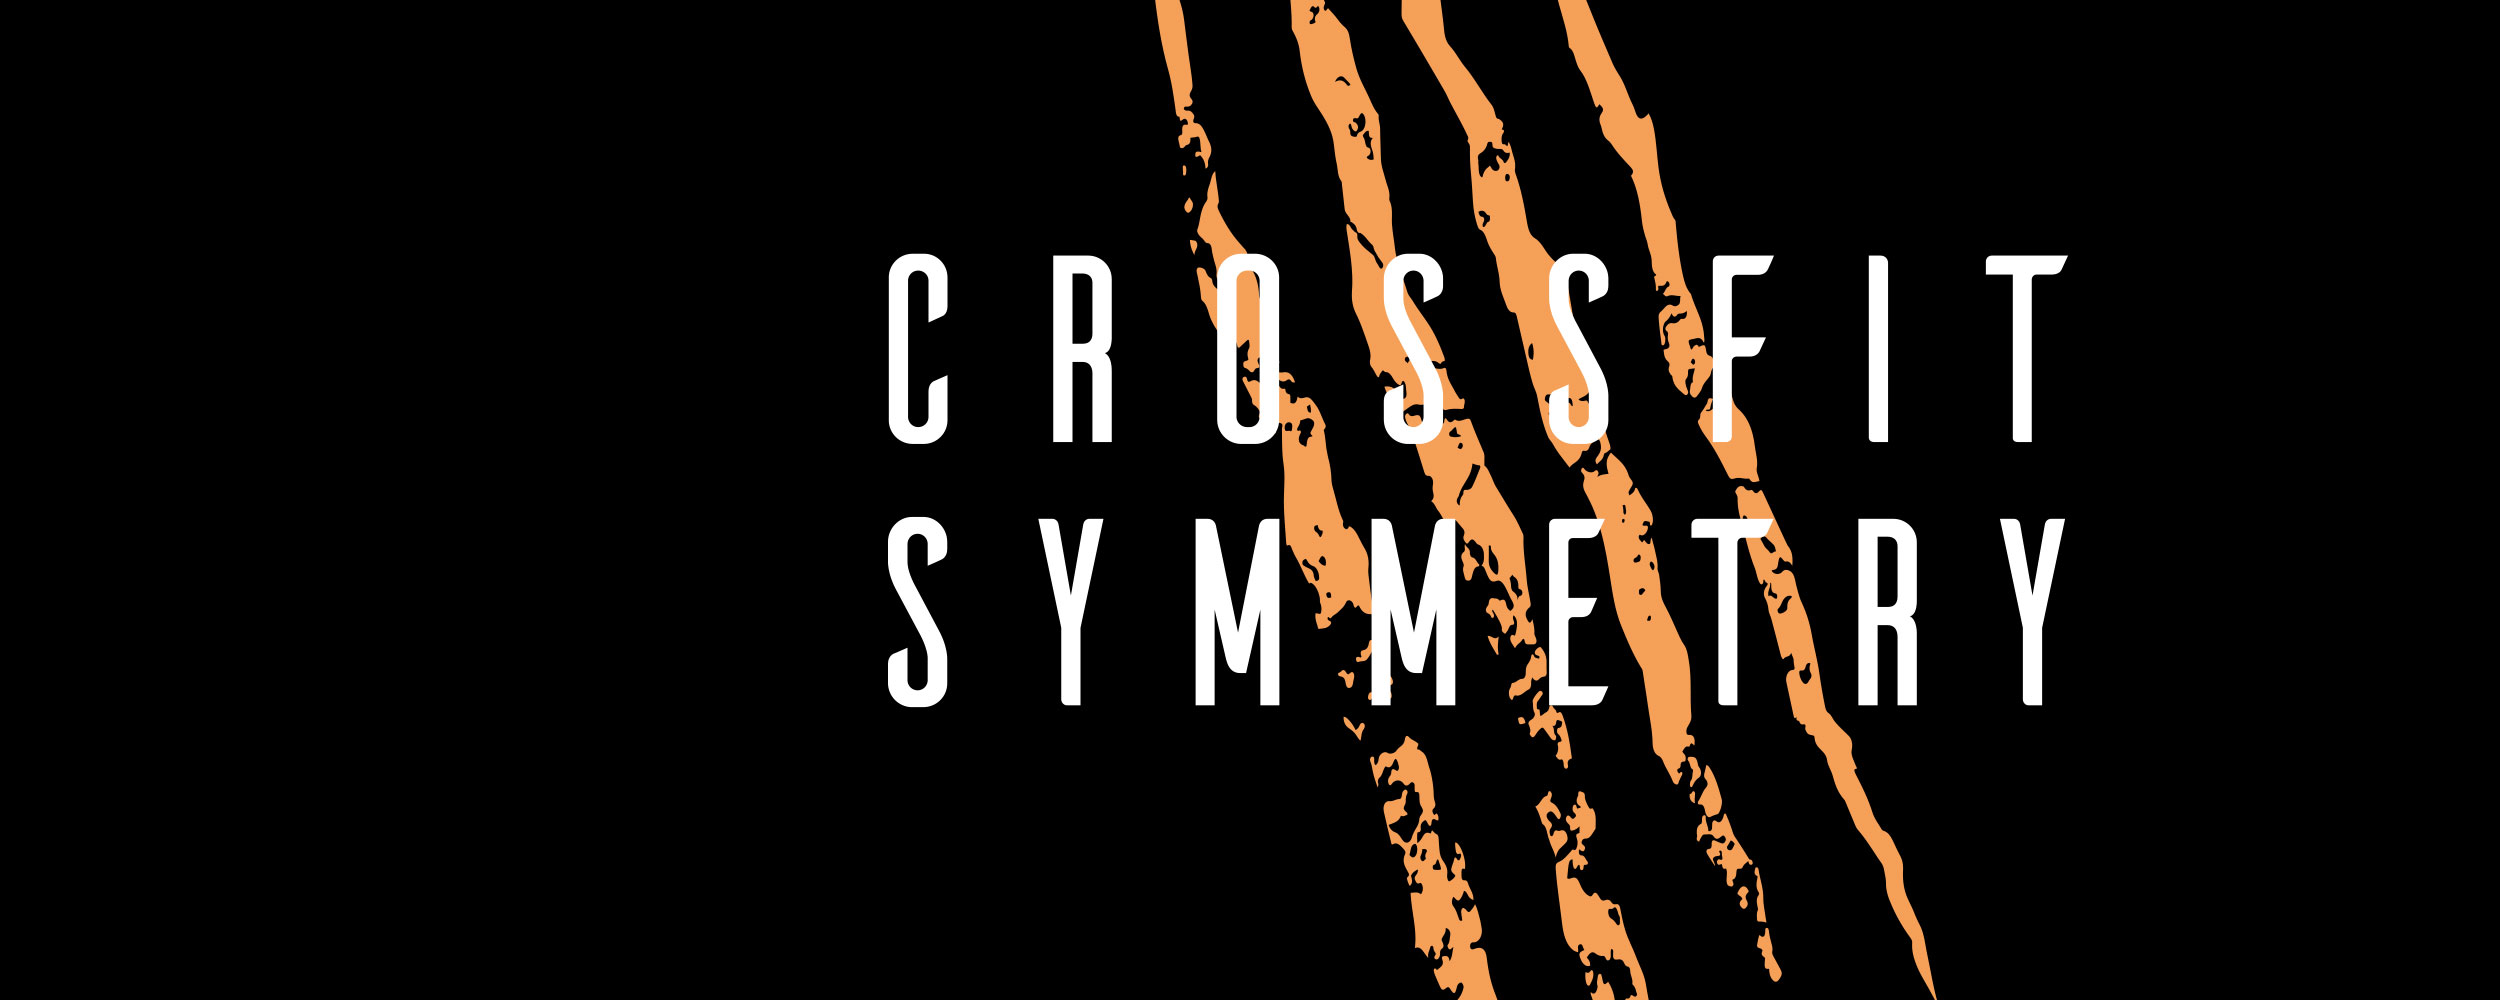 Crossfit-Symmetry-Back.jpg